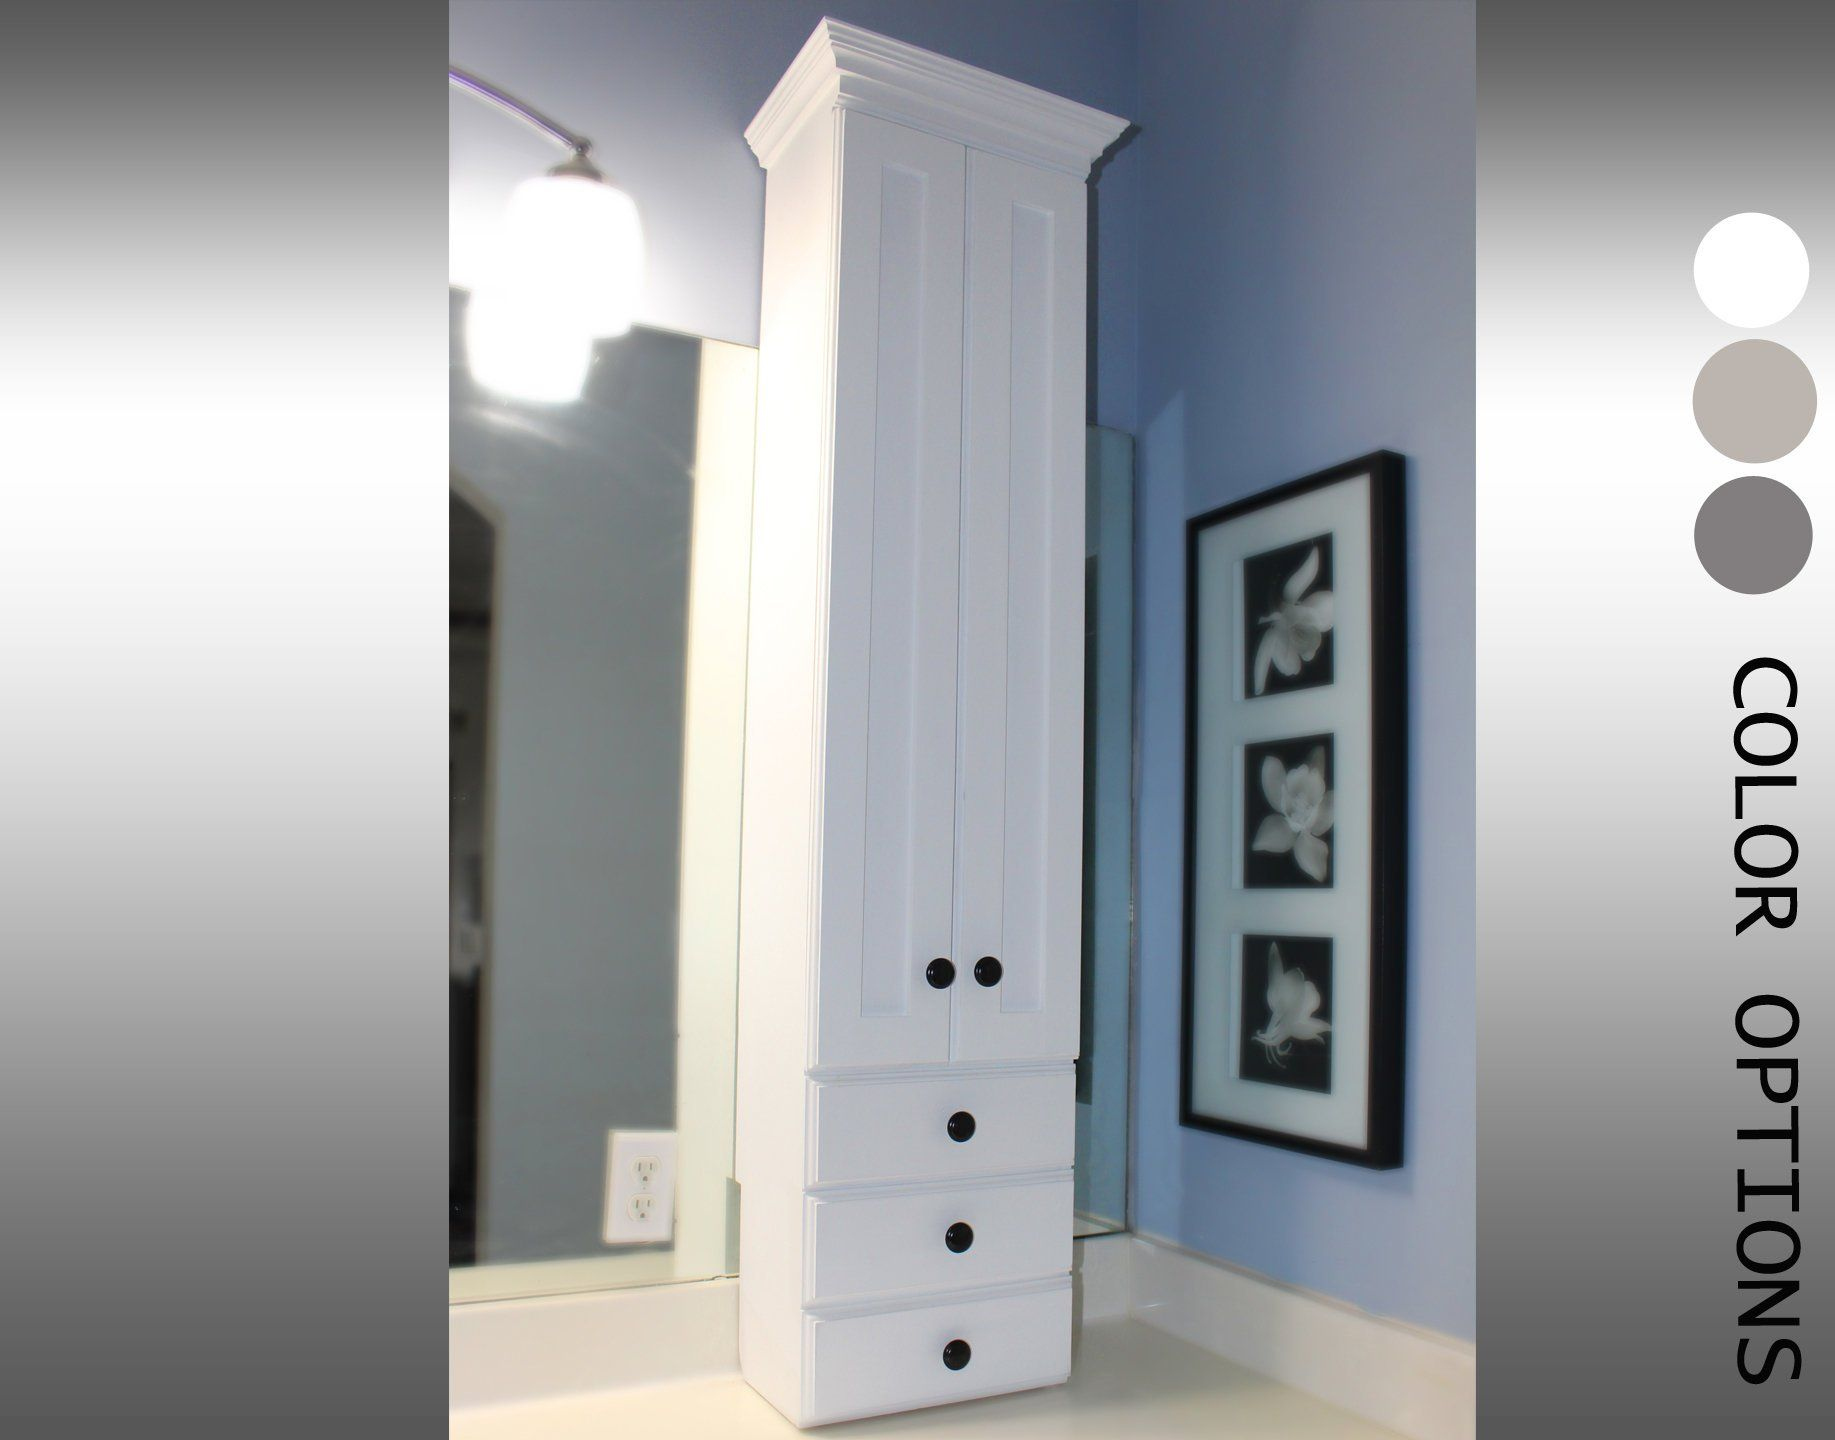 Bathroom Tower, Vanity Tower, Vanity Cabinet, Bathroom Cabinet, Bathroom Vanity